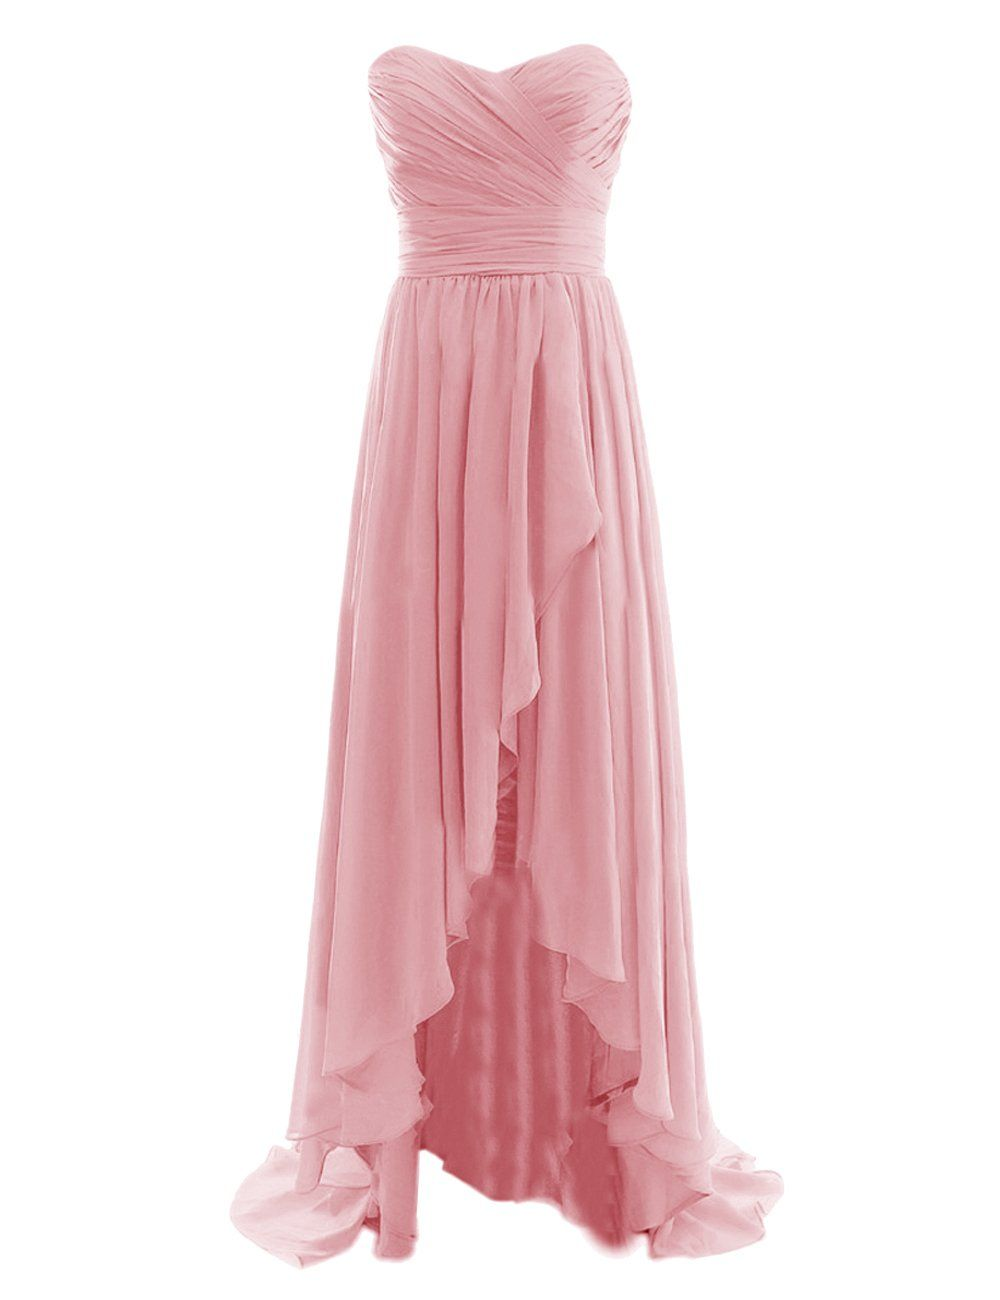 Diyouth Long High Low Bridesmaid Dresses Sweetheart Formal Evening ...